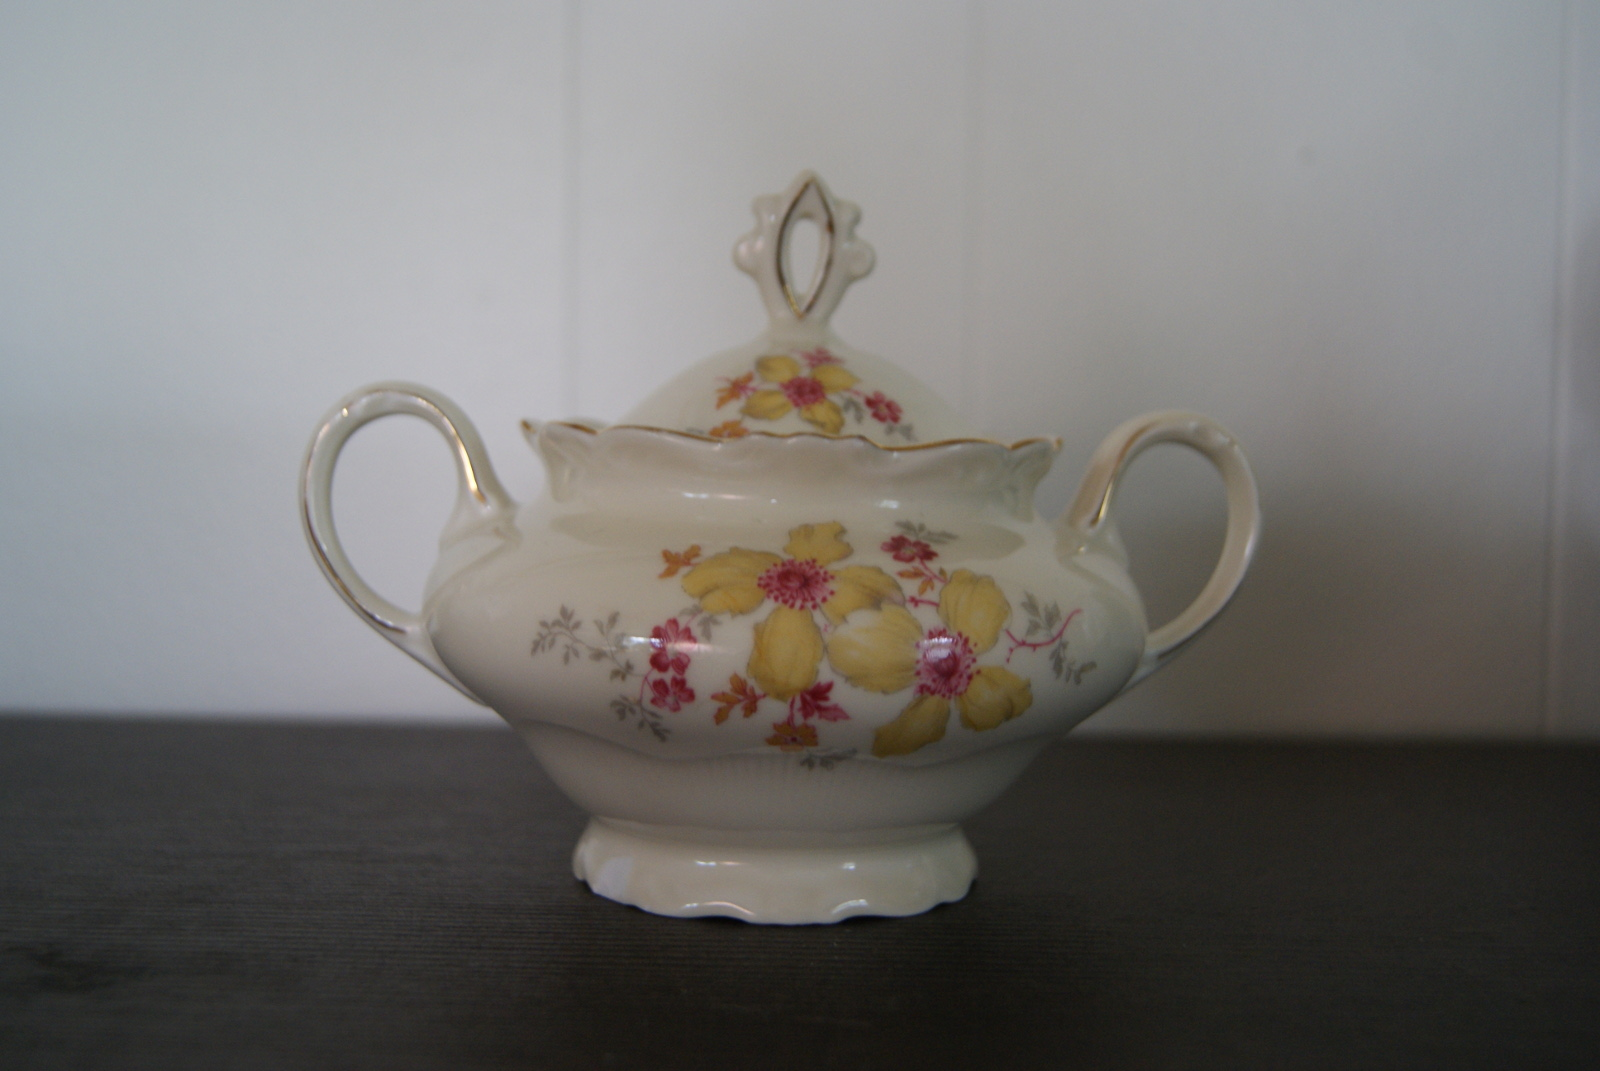 Sorau Sugar bowl with yellow and red flowers